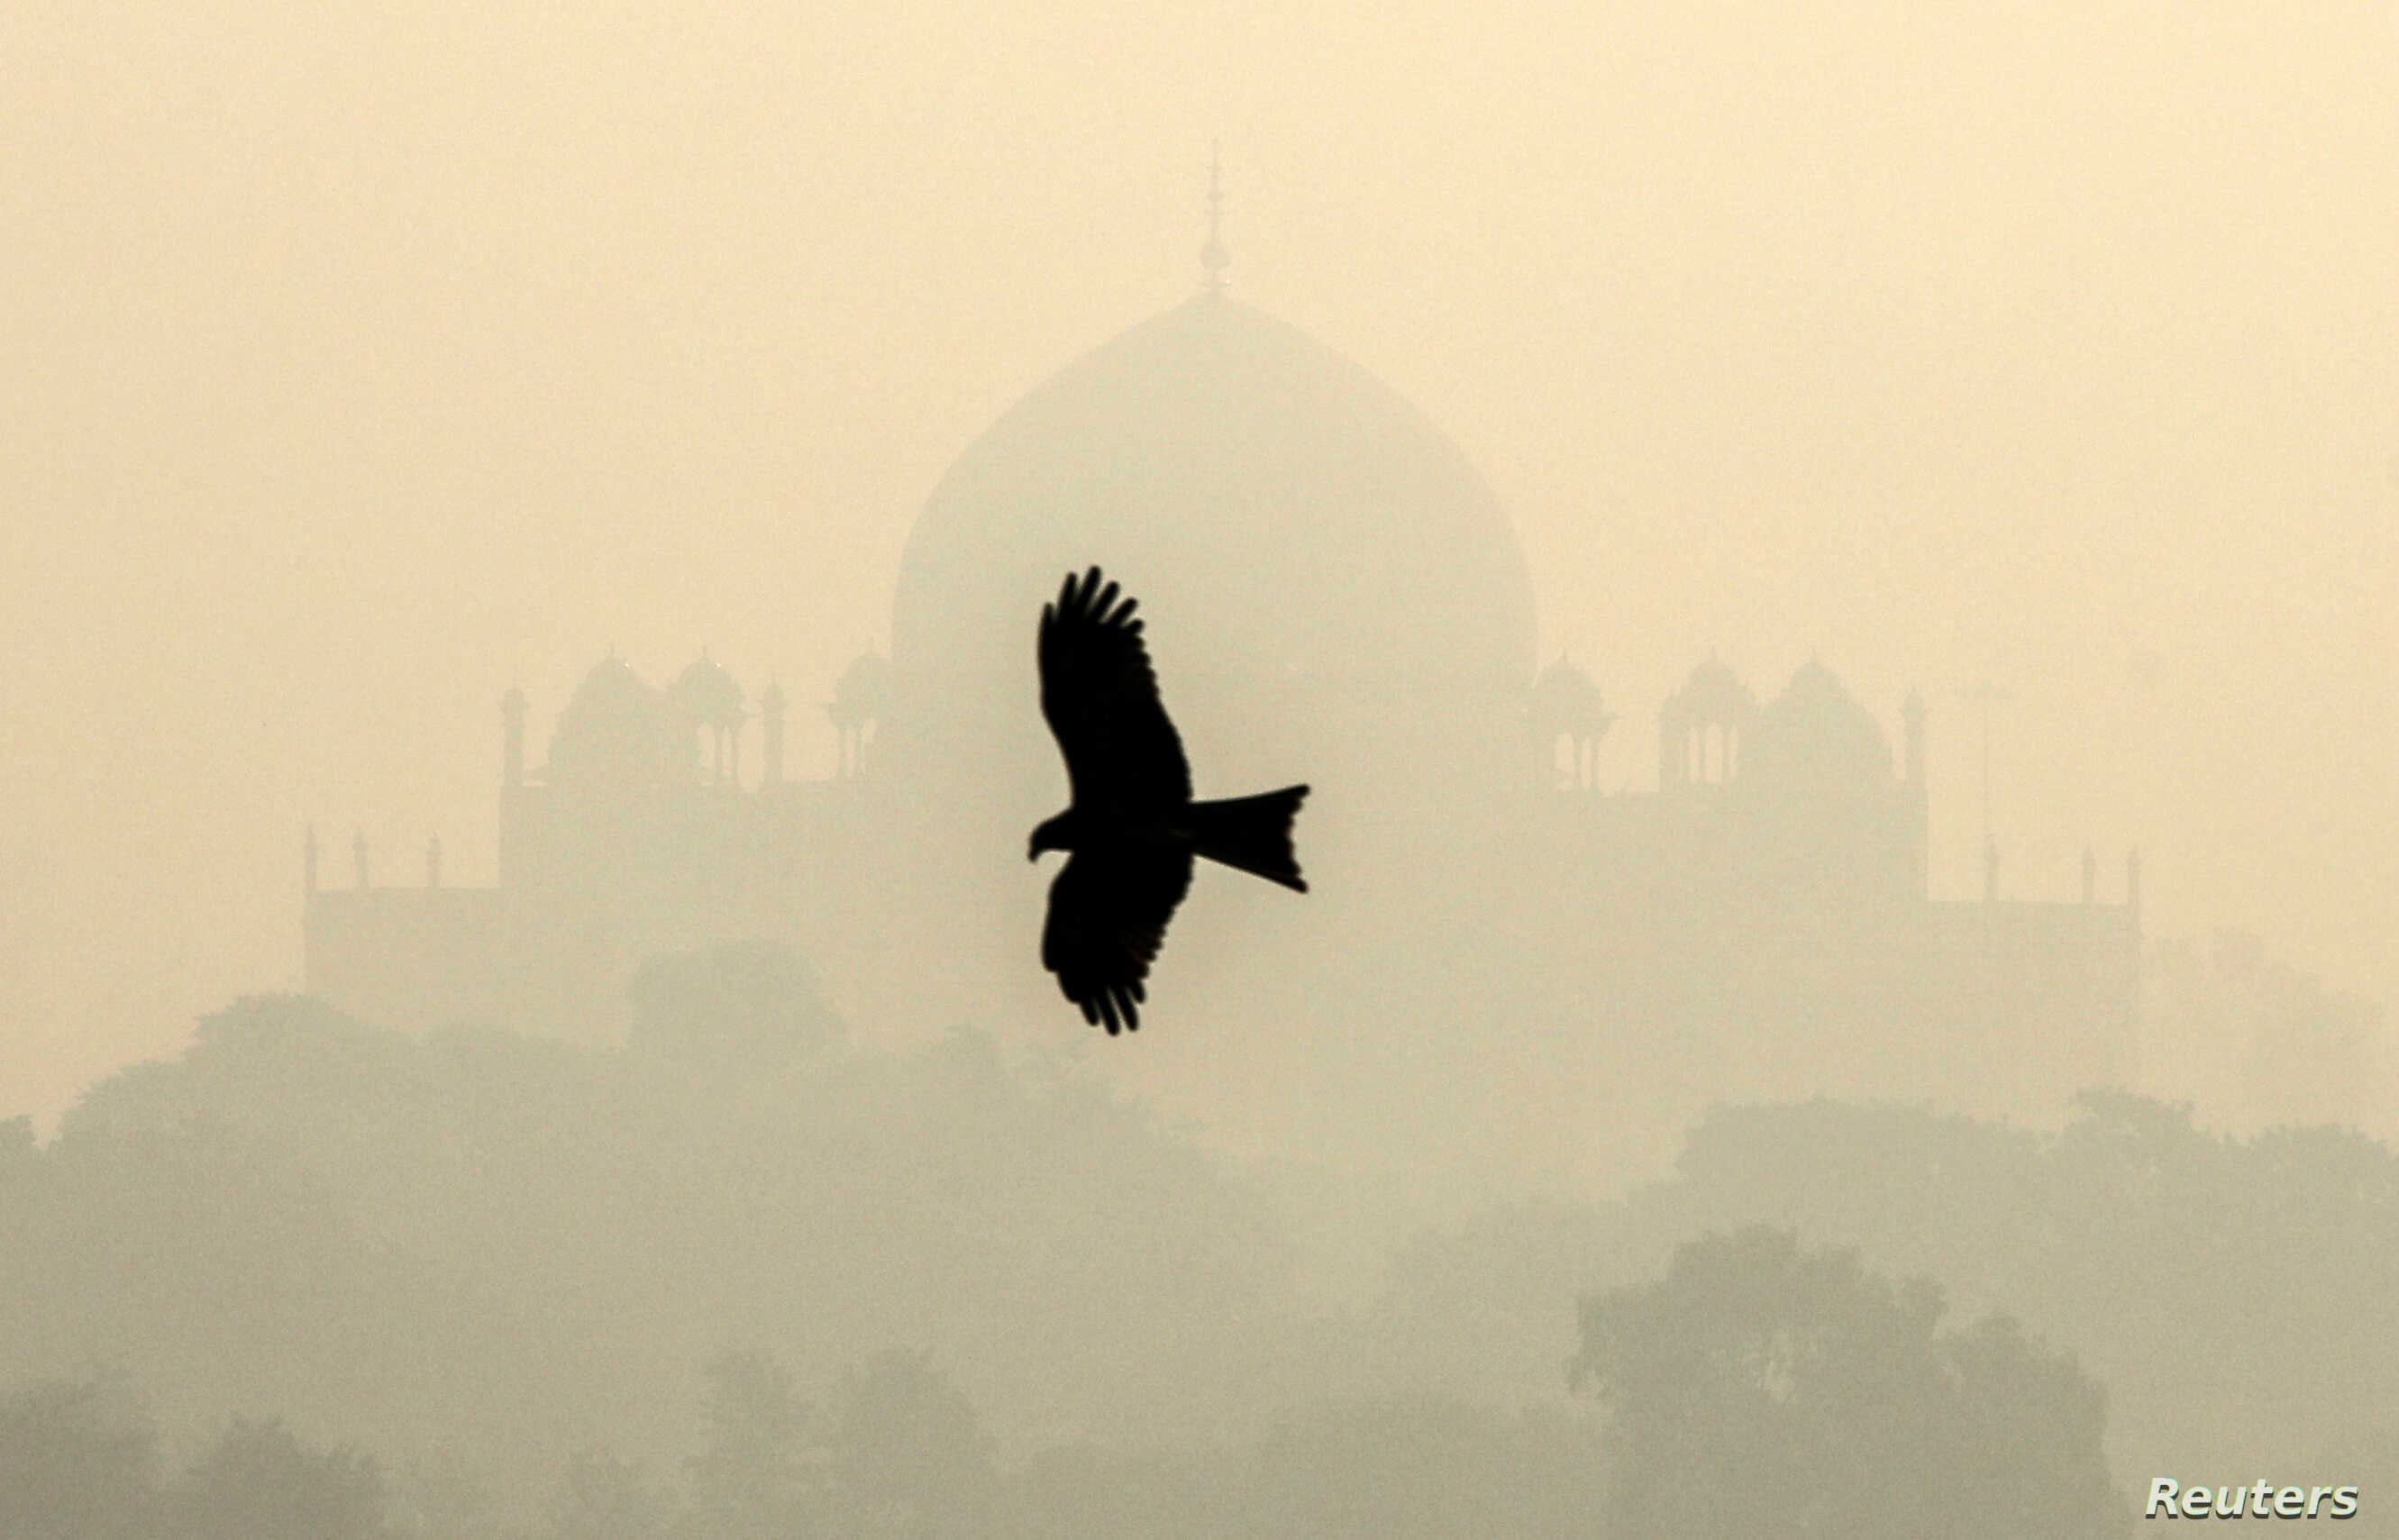 A bird flies past the Humayun's Tomb shrouded in smog in New Delhi, India, Oct. 29, 2018.